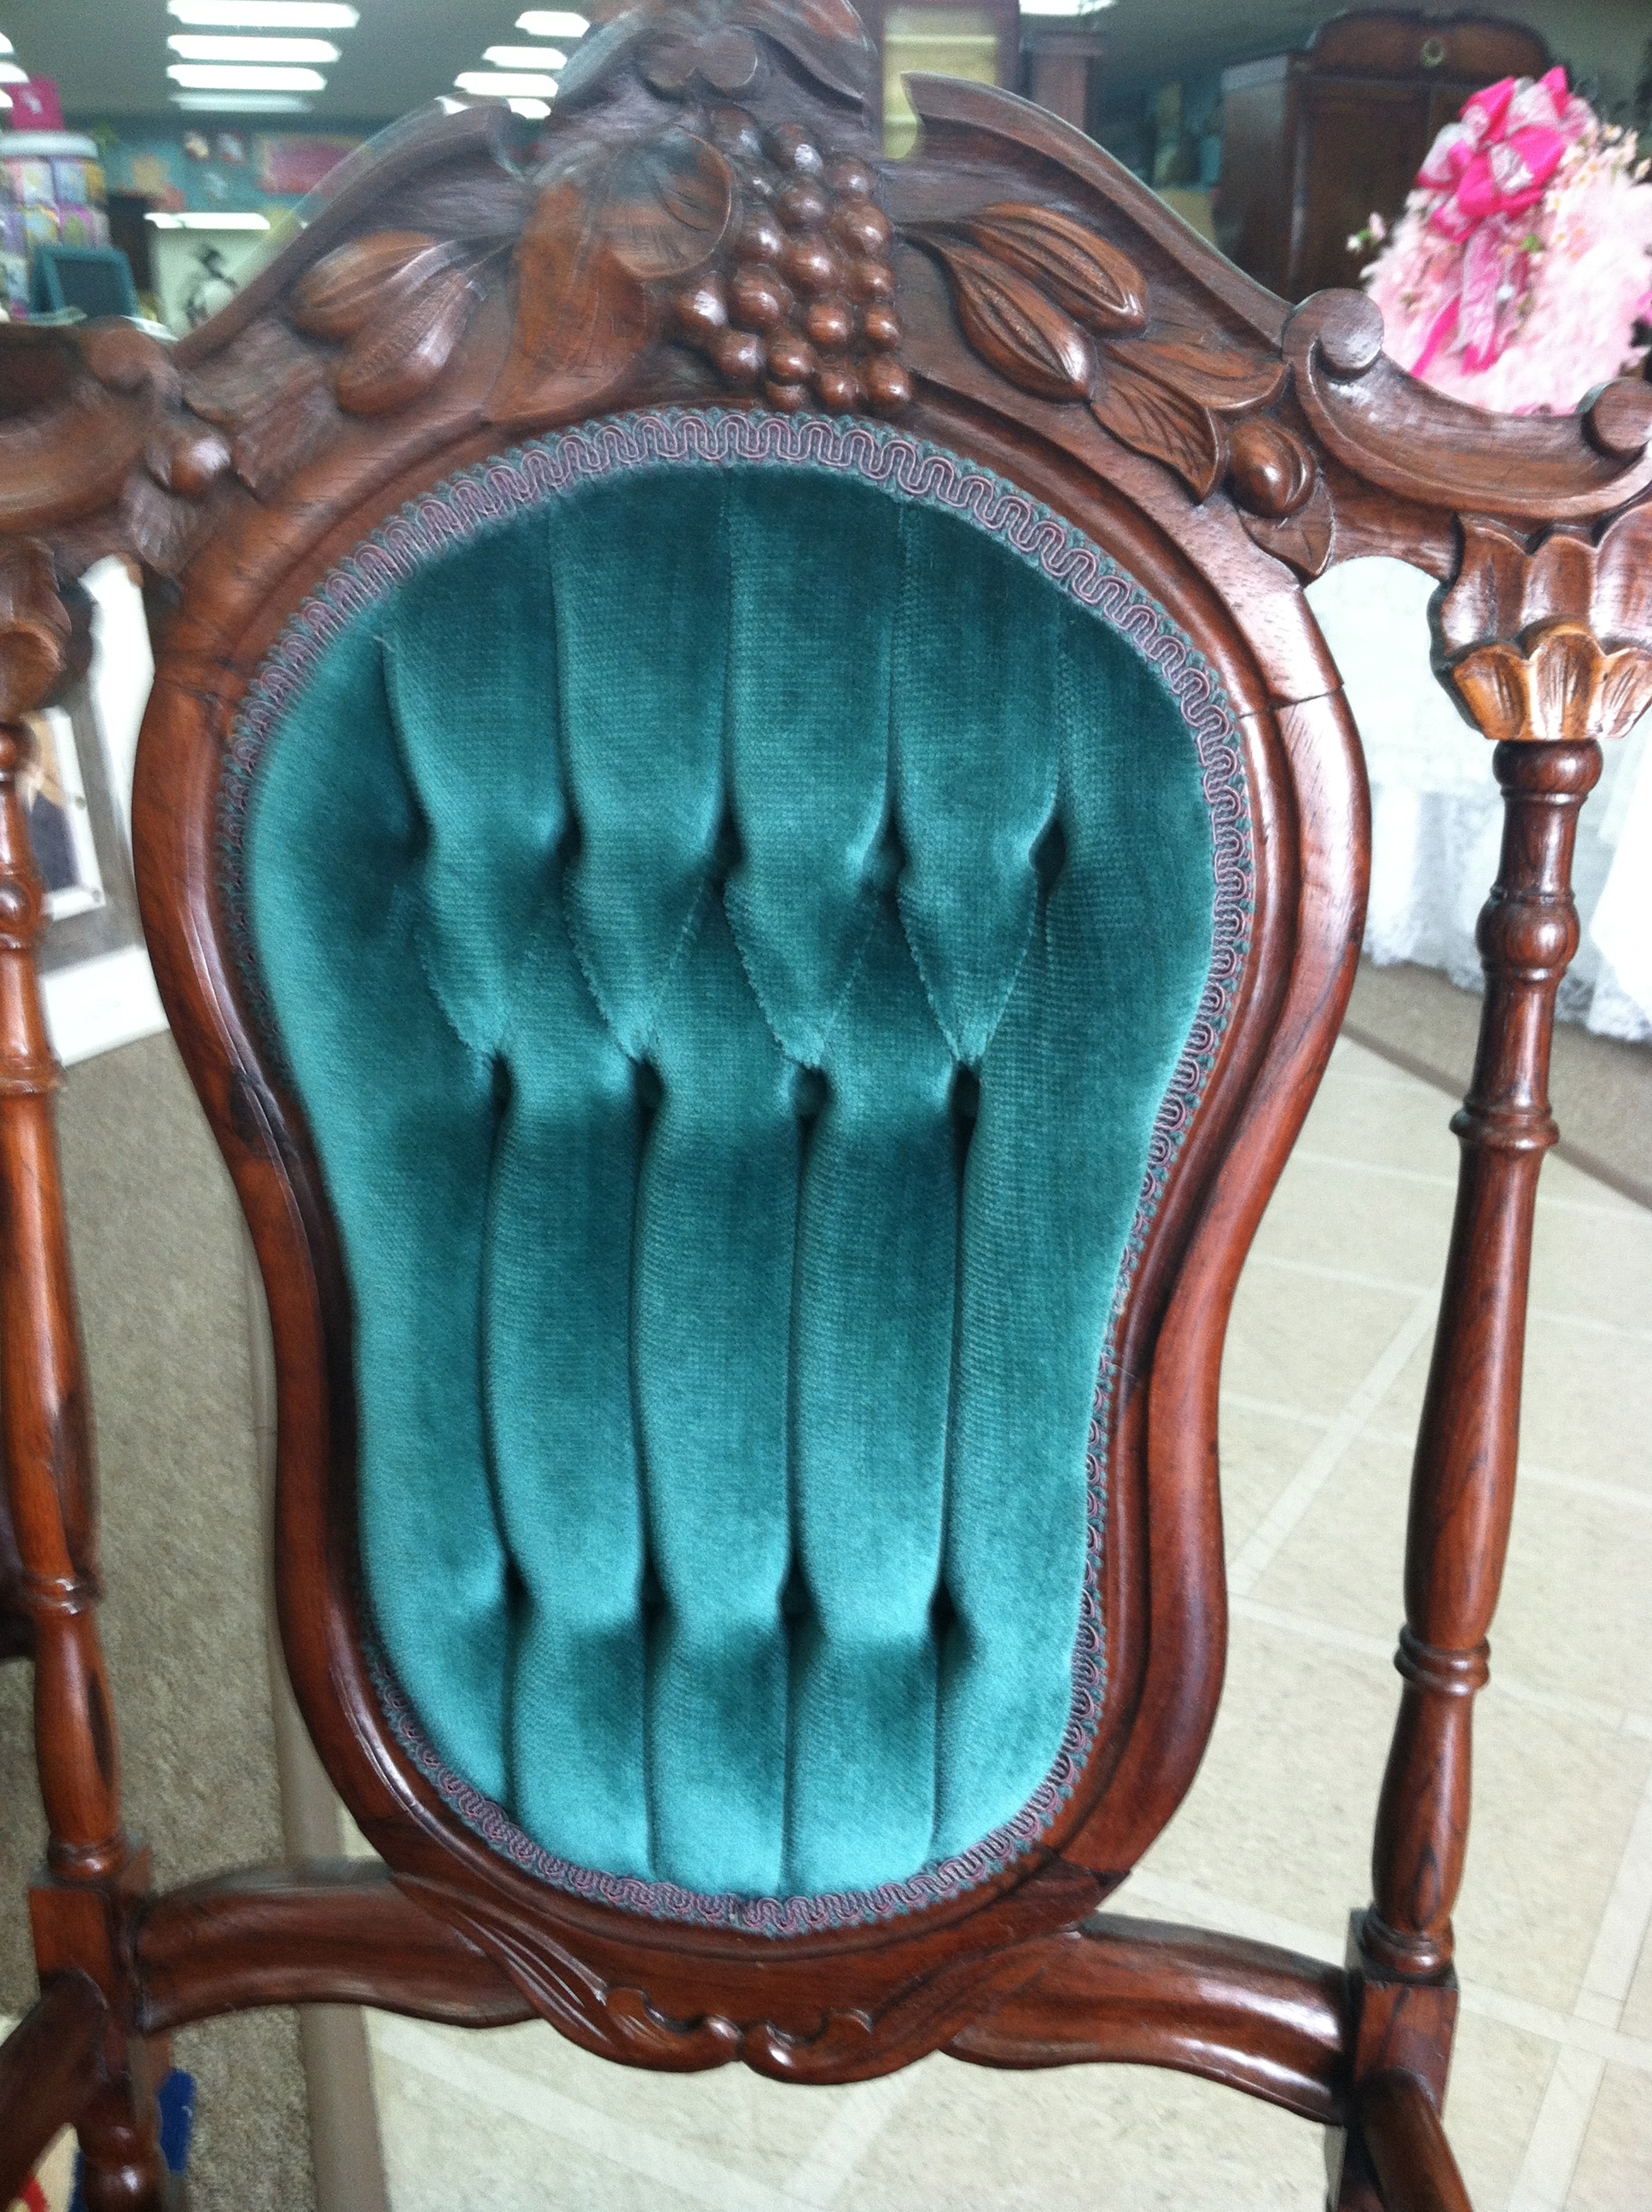 Gorgeous Antique Victorian Rosewood Carved Parlor Chair